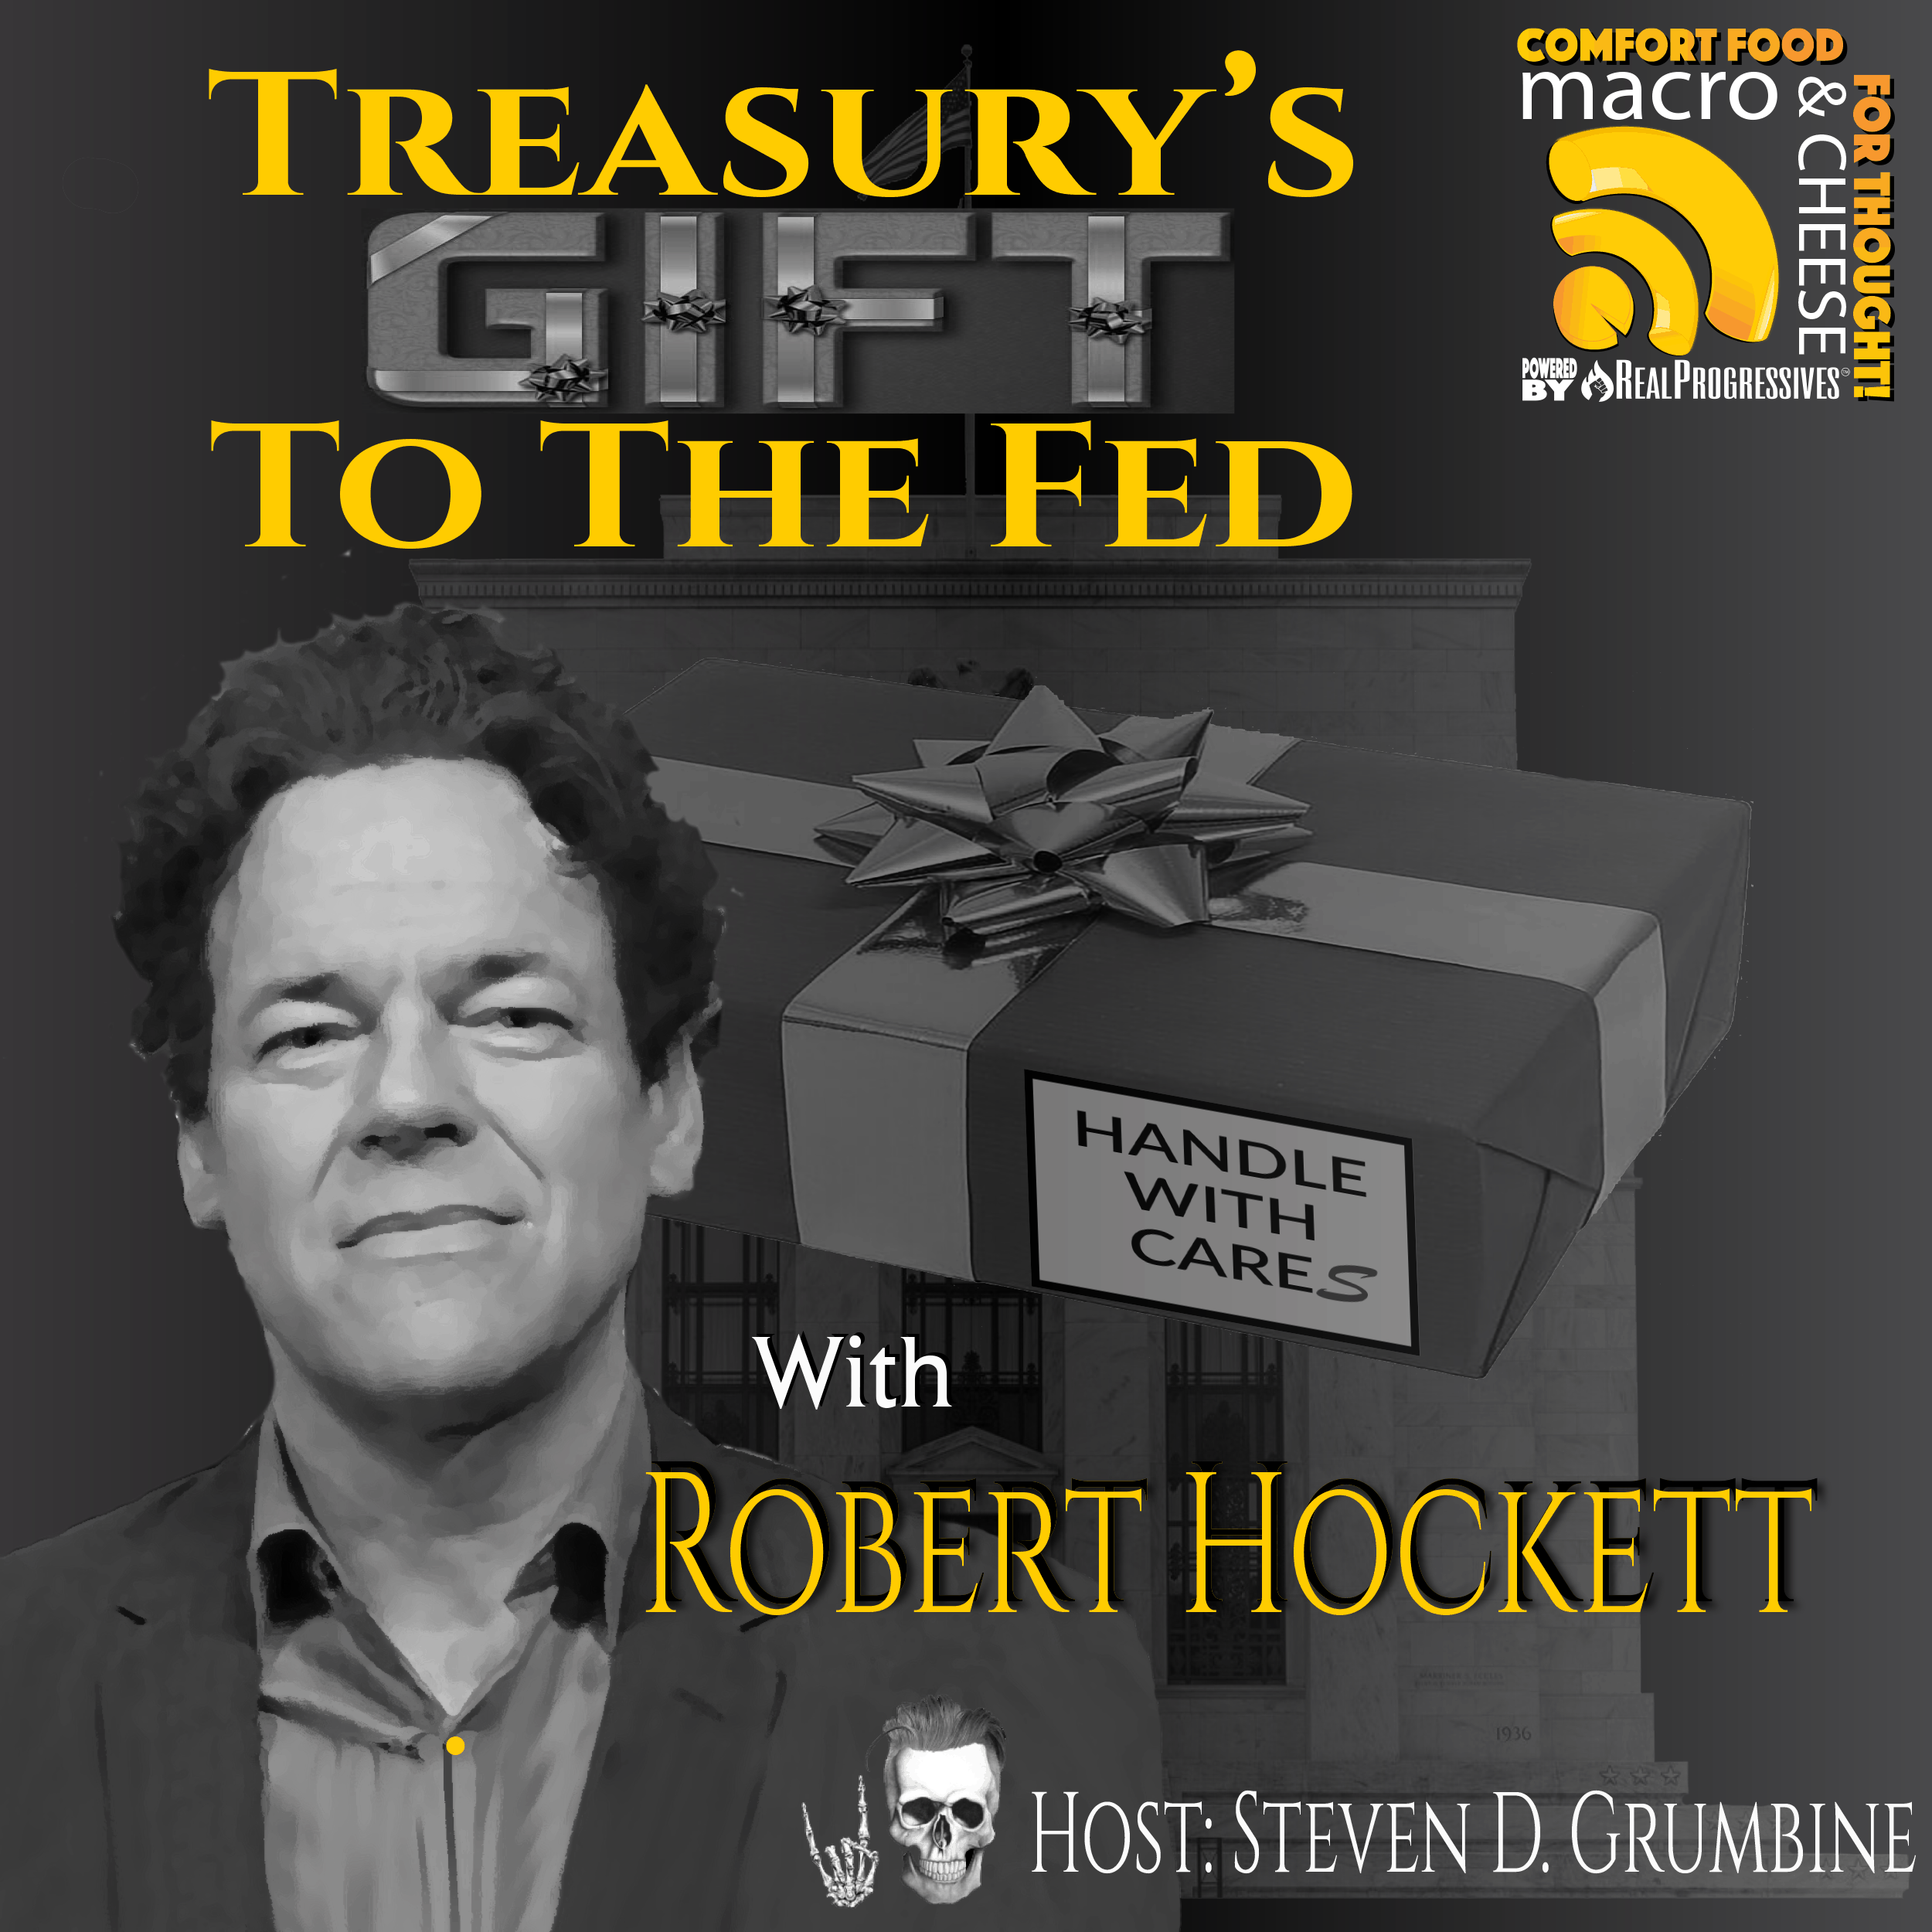 Episode 96 - Treasury's Gift To The Fed with Robert Hockett